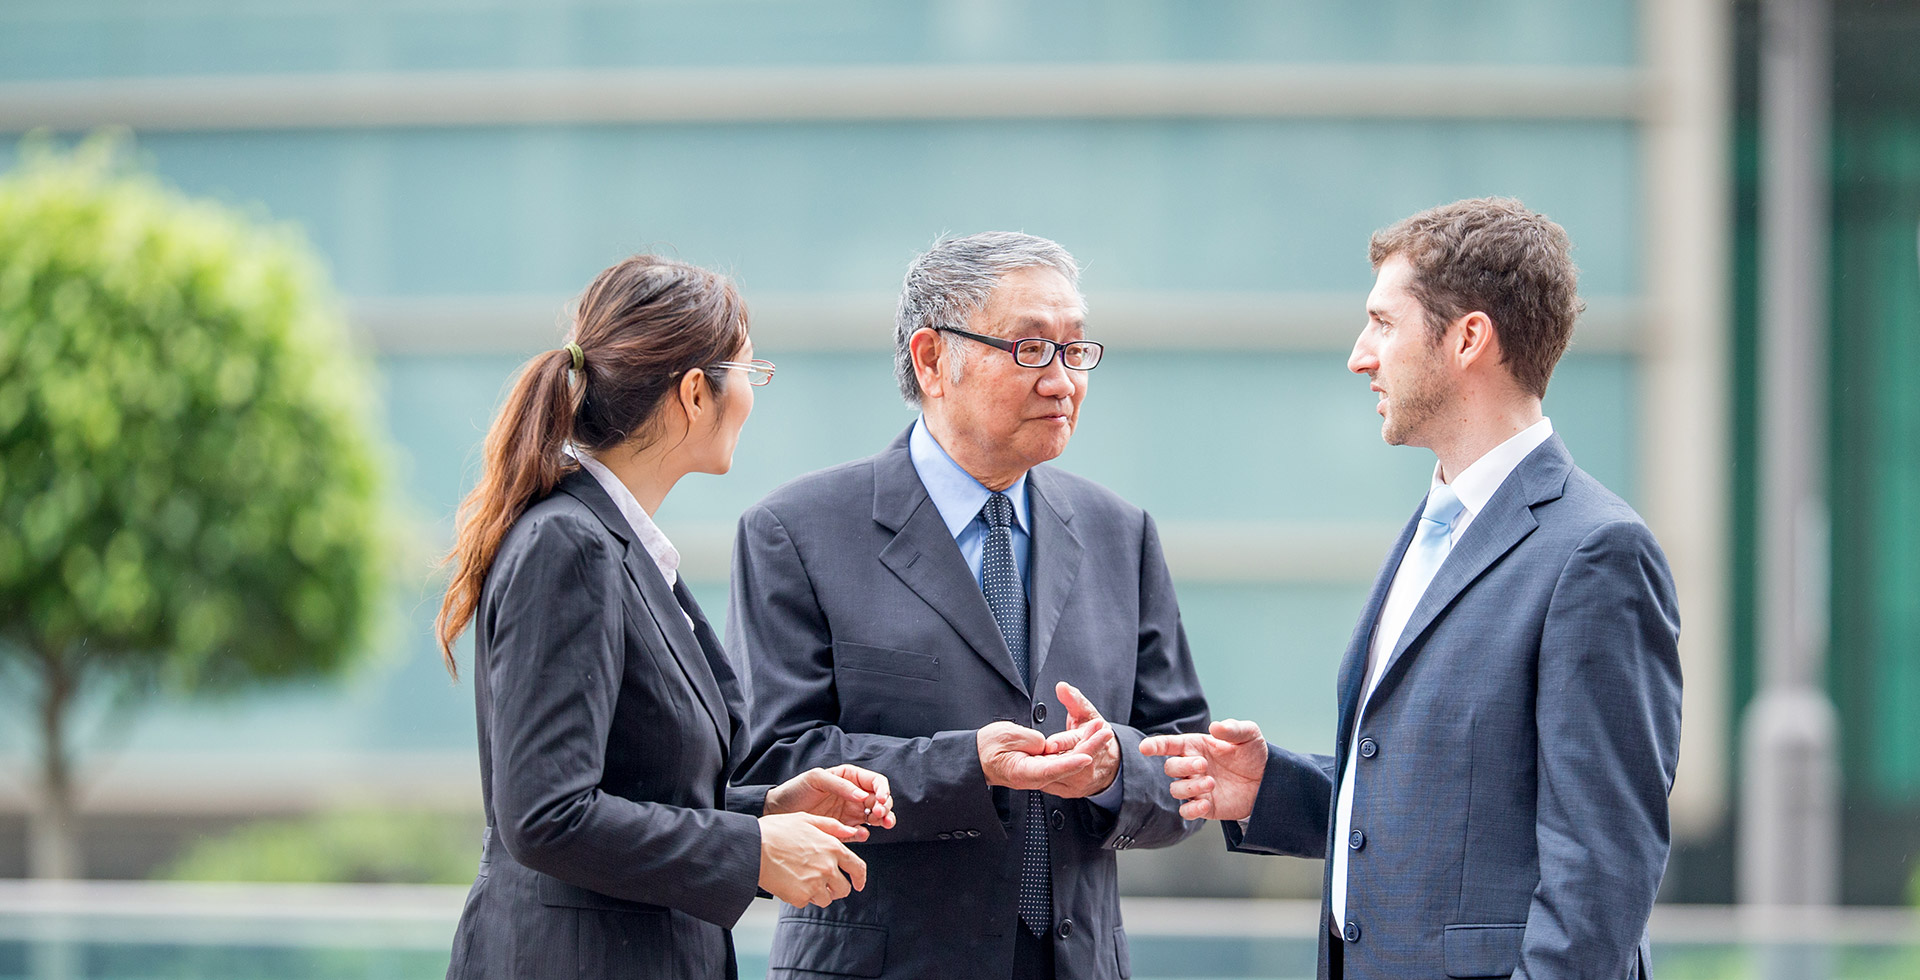 Three business people discussing